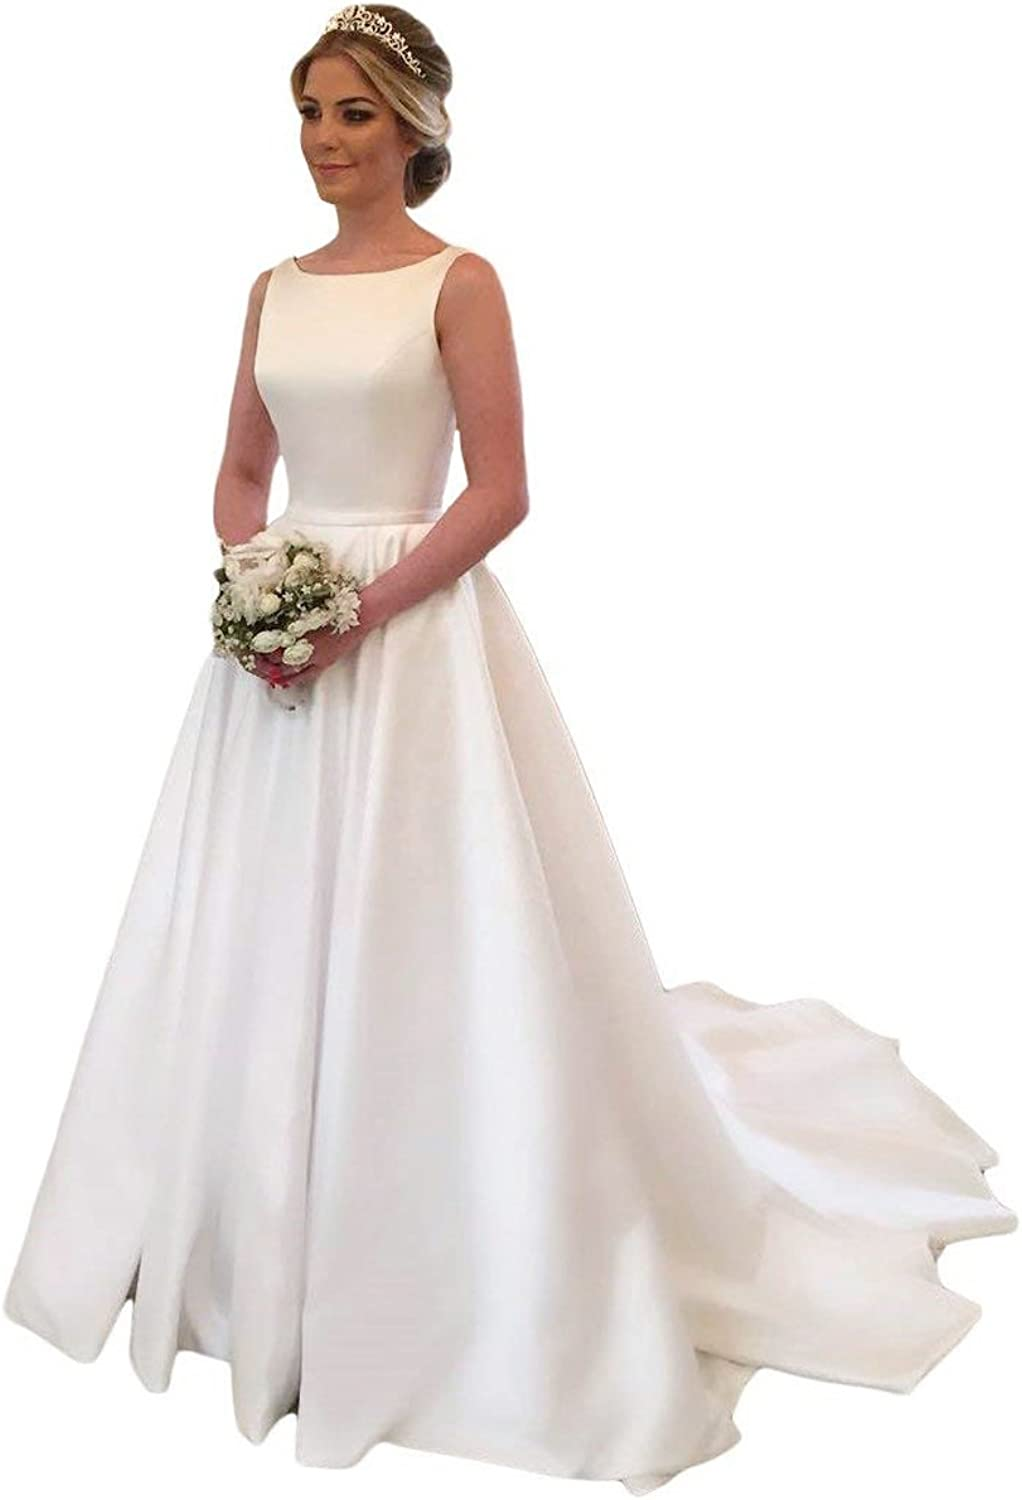 XJLY Simple Satin Wedding Dresses Vintage Bridal Dresses with Court Train